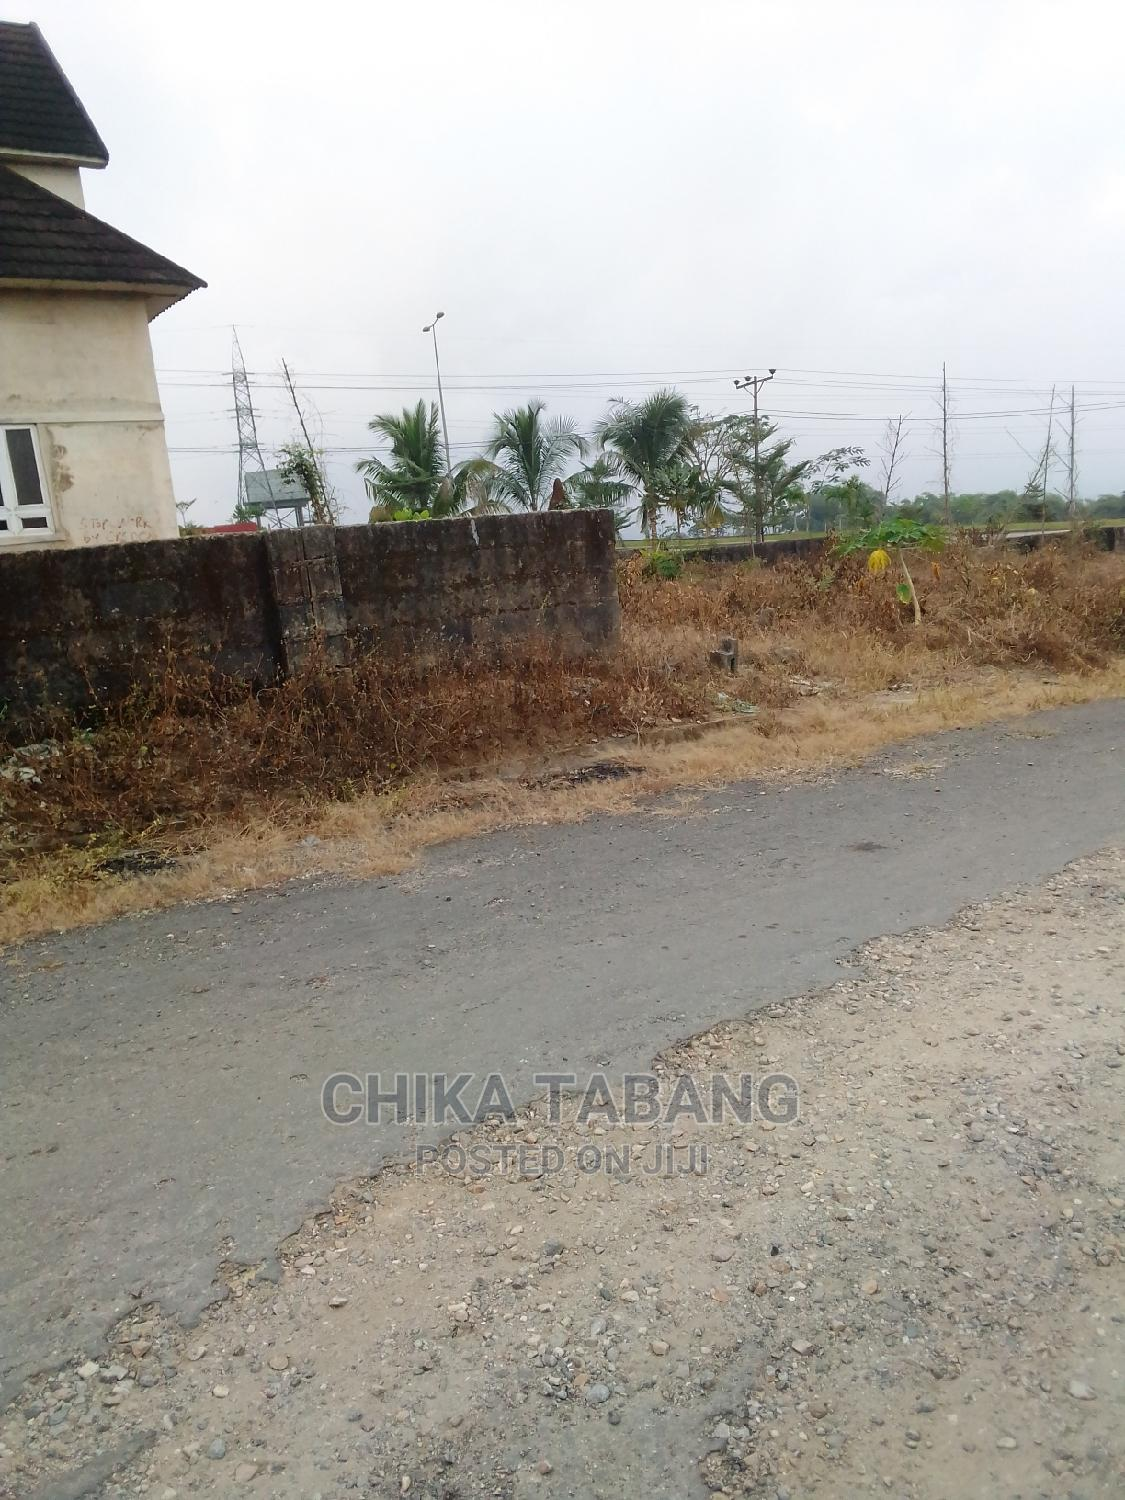 7 Bedroom Duplex in a Very Secure,Choice Area. | Houses & Apartments For Sale for sale in Calabar, Cross River State, Nigeria